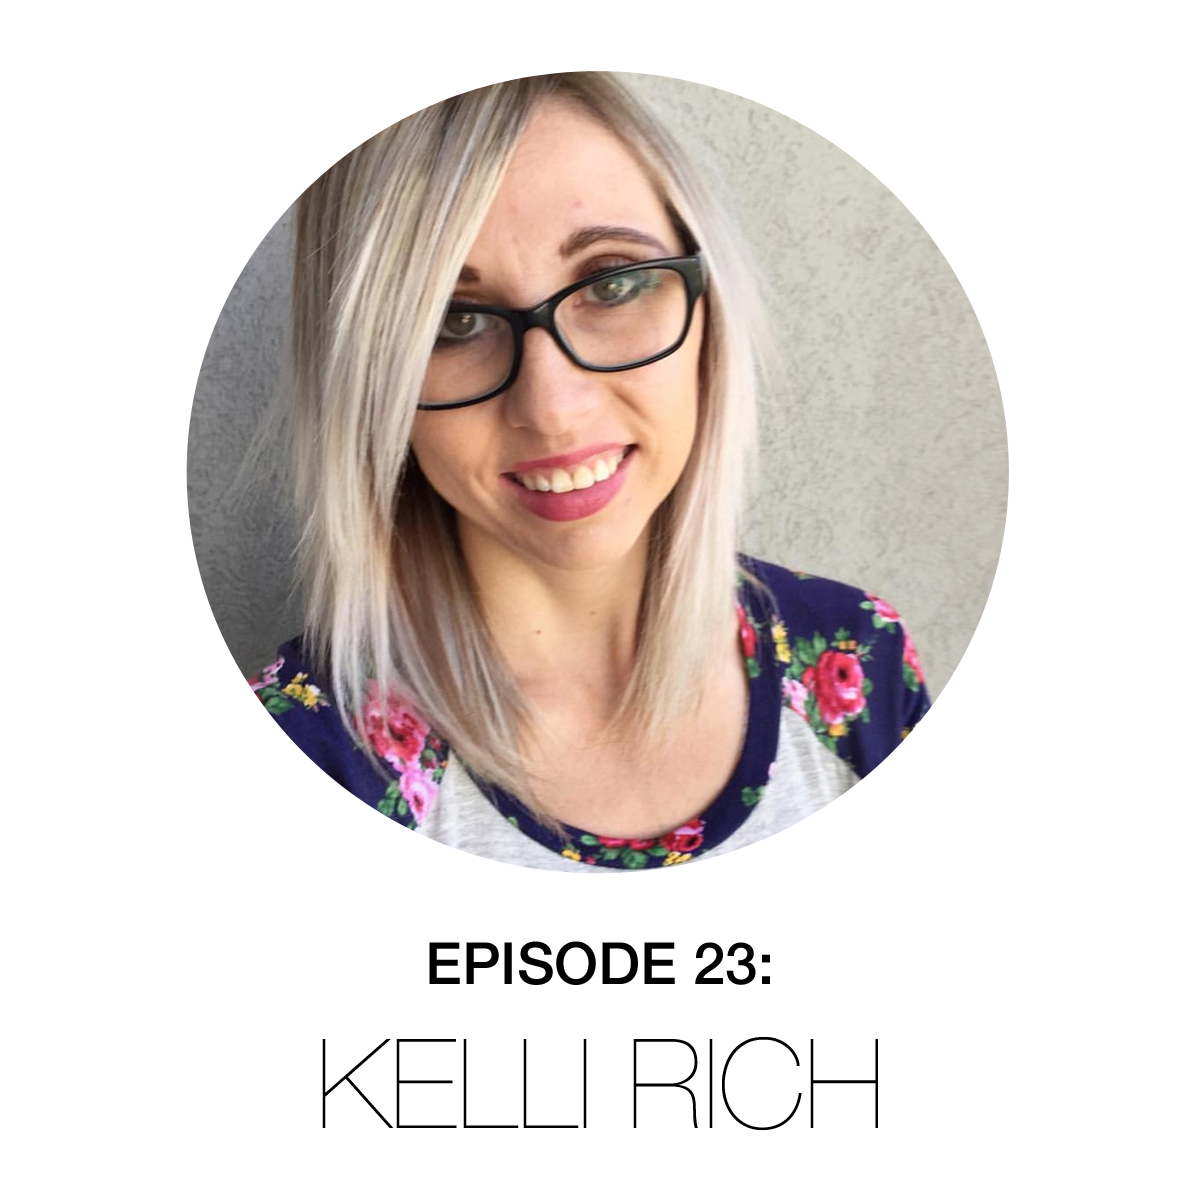 Episode 23 – Kelli Rich